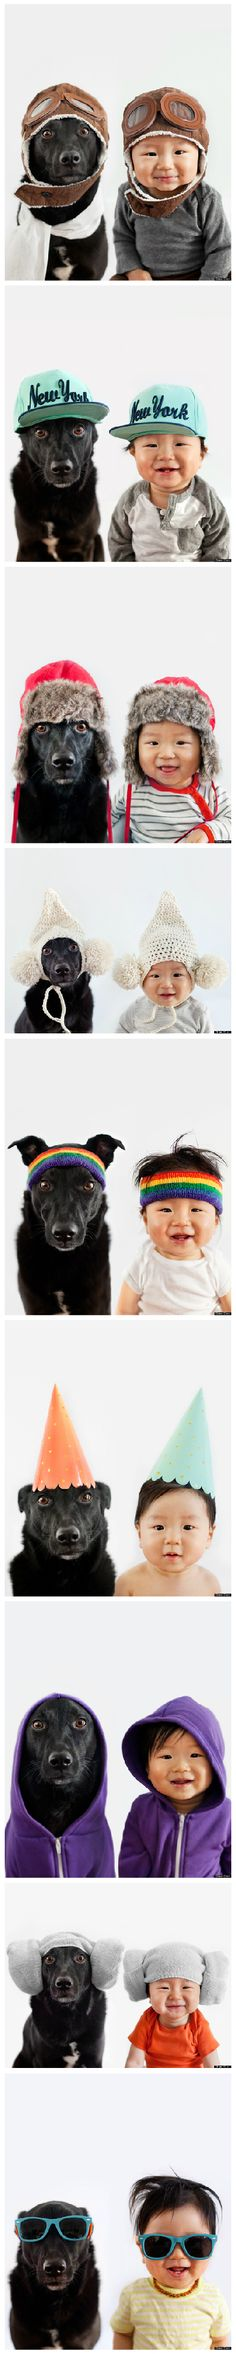 Dogs and Puppies : Dogs - Image : Dogs and Puppies Photo - Description Rescue Dog And Baby BFF Are Partners In Crime AND Fashion. This is so cute! Sharing is Caring - Hey can you Share this Photo Love My Dog, Cute Puppies, Dogs And Puppies, Doggies, Humor Animal, Funny Animals, Cute Animals, Asian Babies, Dogs And Kids